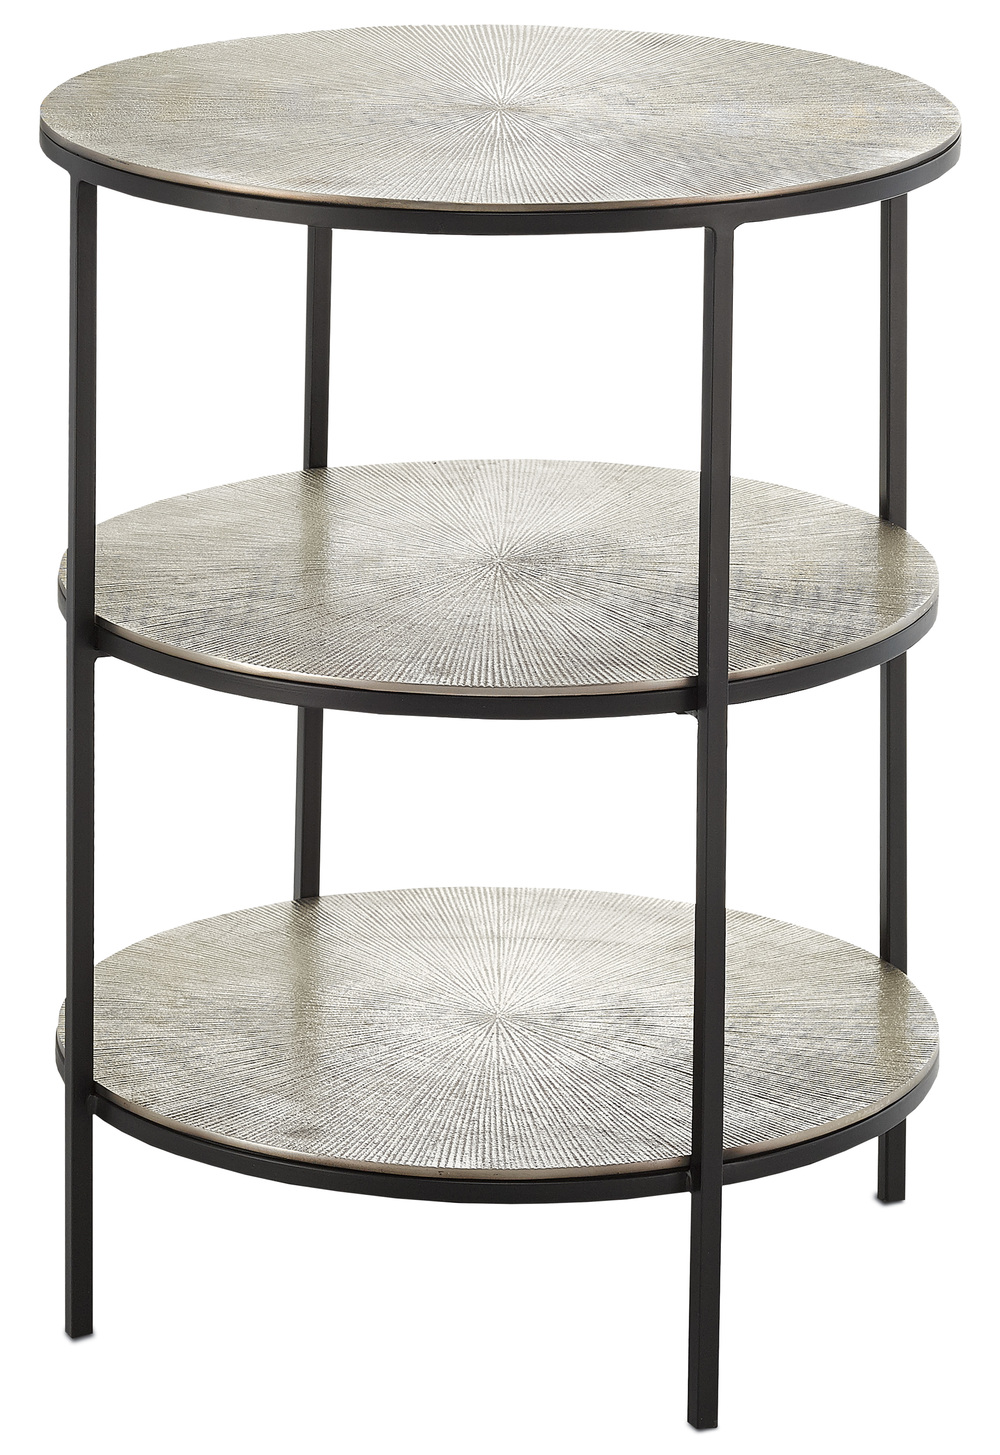 Currey & Company - Cane Accent Table